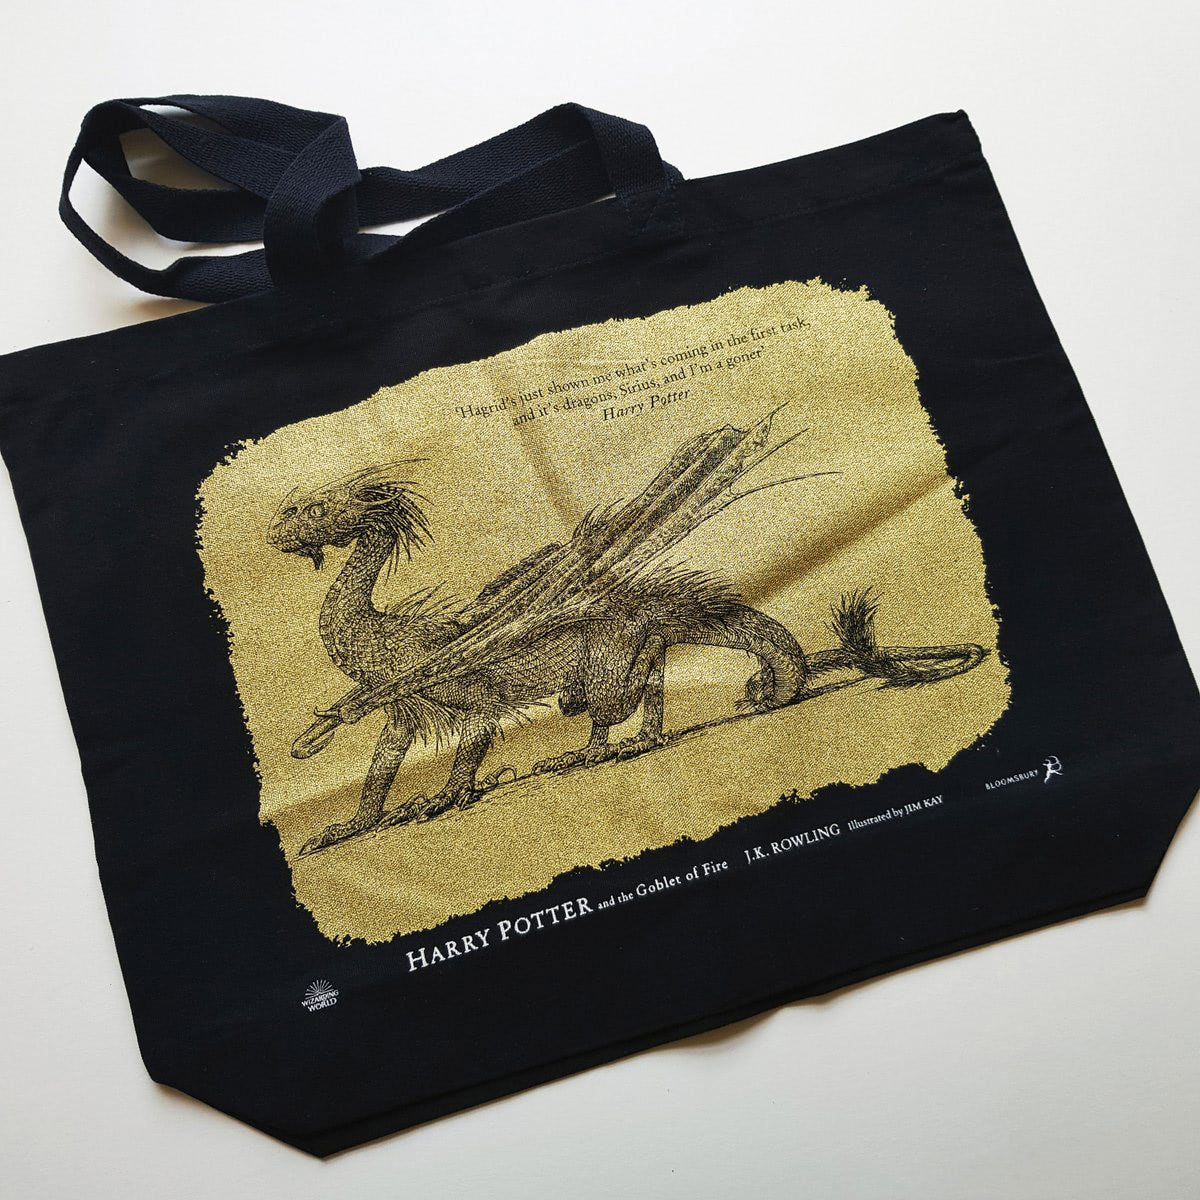 'Goblet of Fire' illustrated edition (deluxe tote bag)